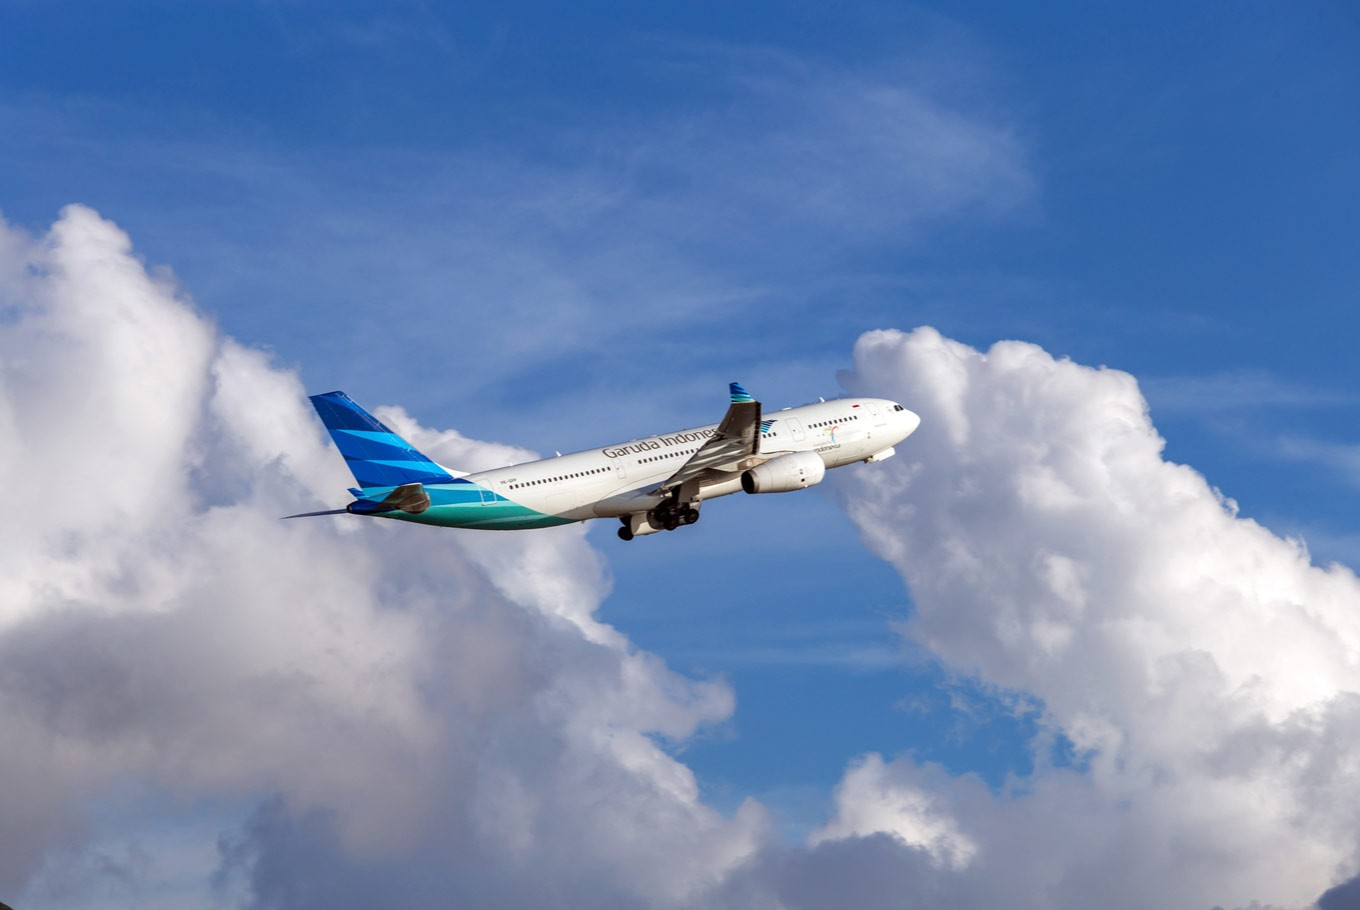 Garuda Indonesia cuts airfares by 50 percent in anniversary offer